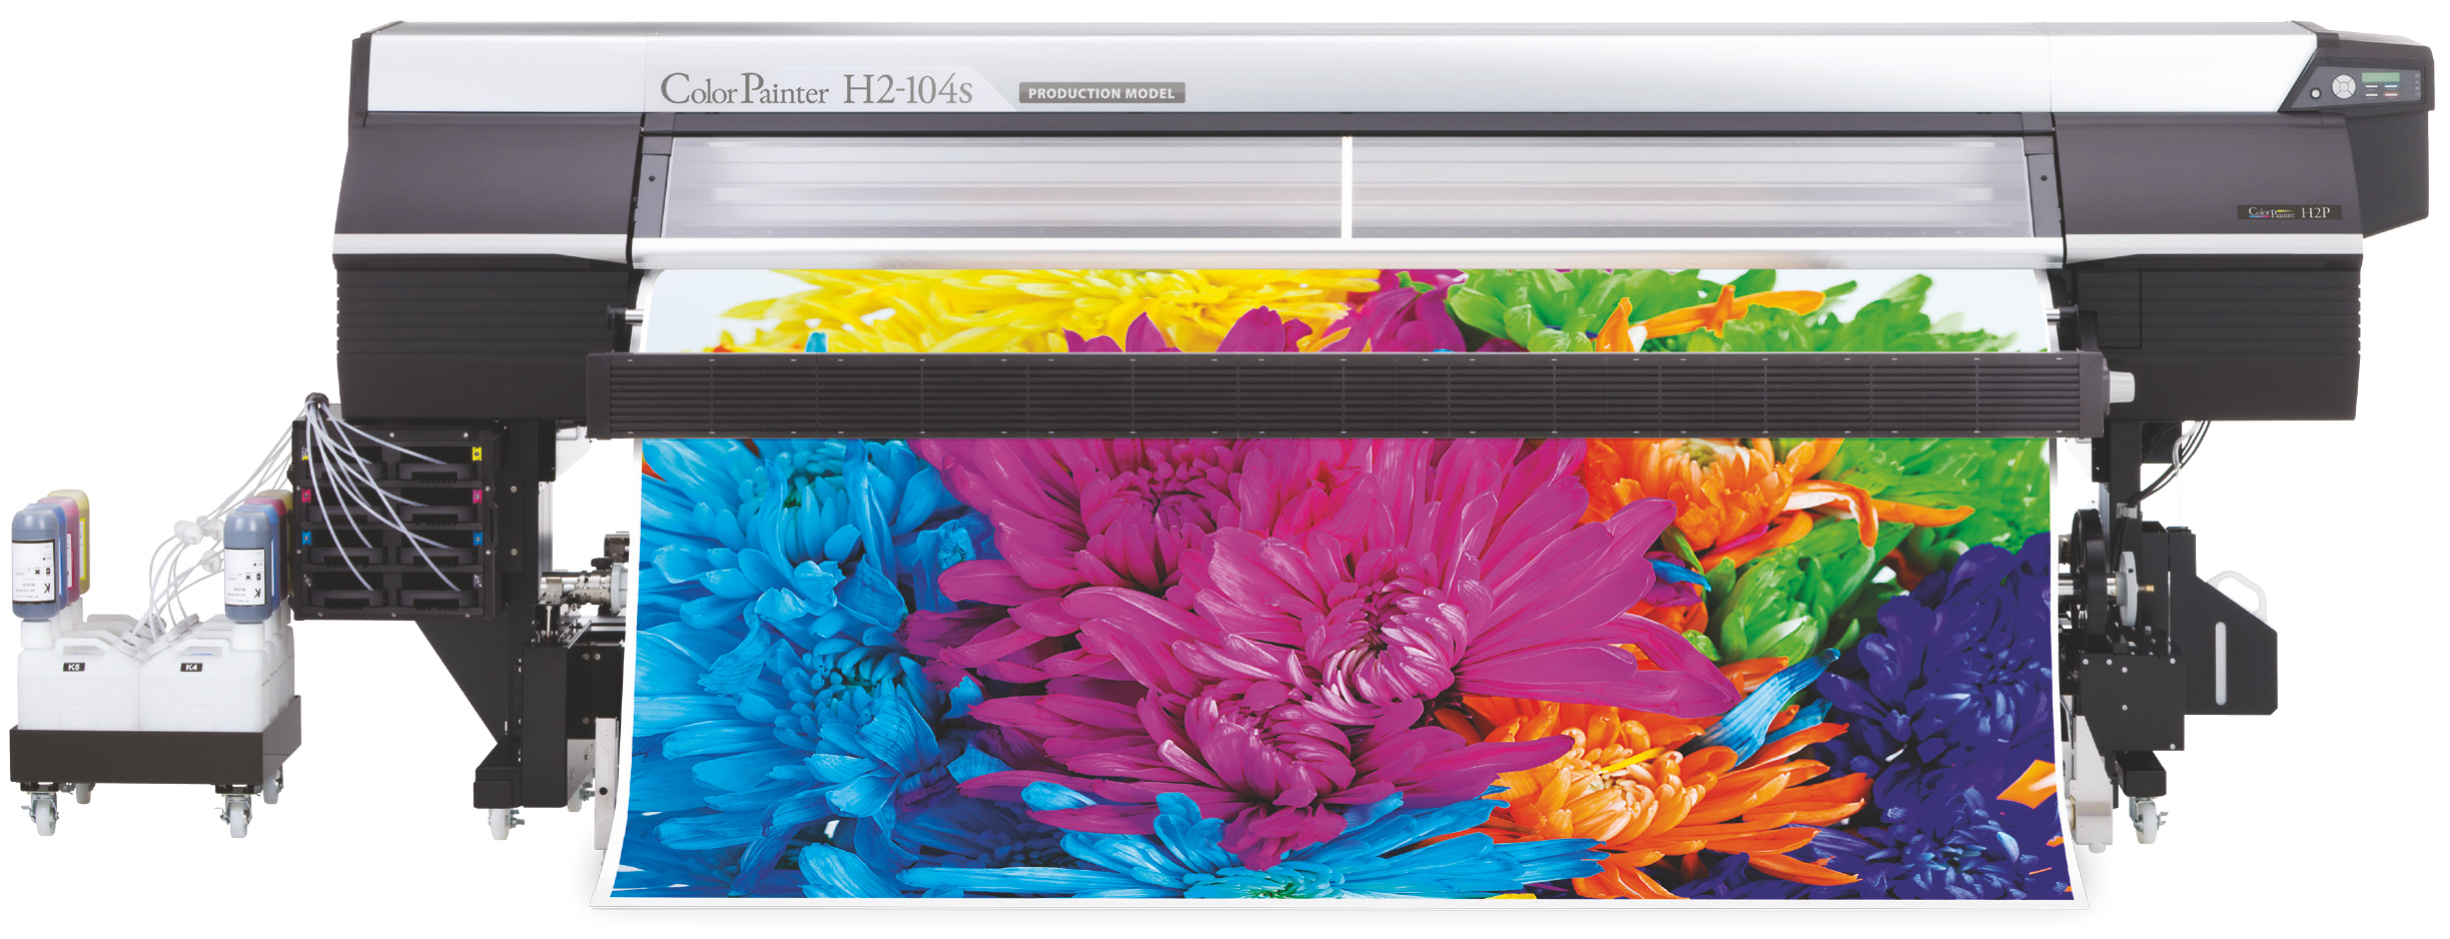 Ploter solentowy OKI ColorPainter H2-104s